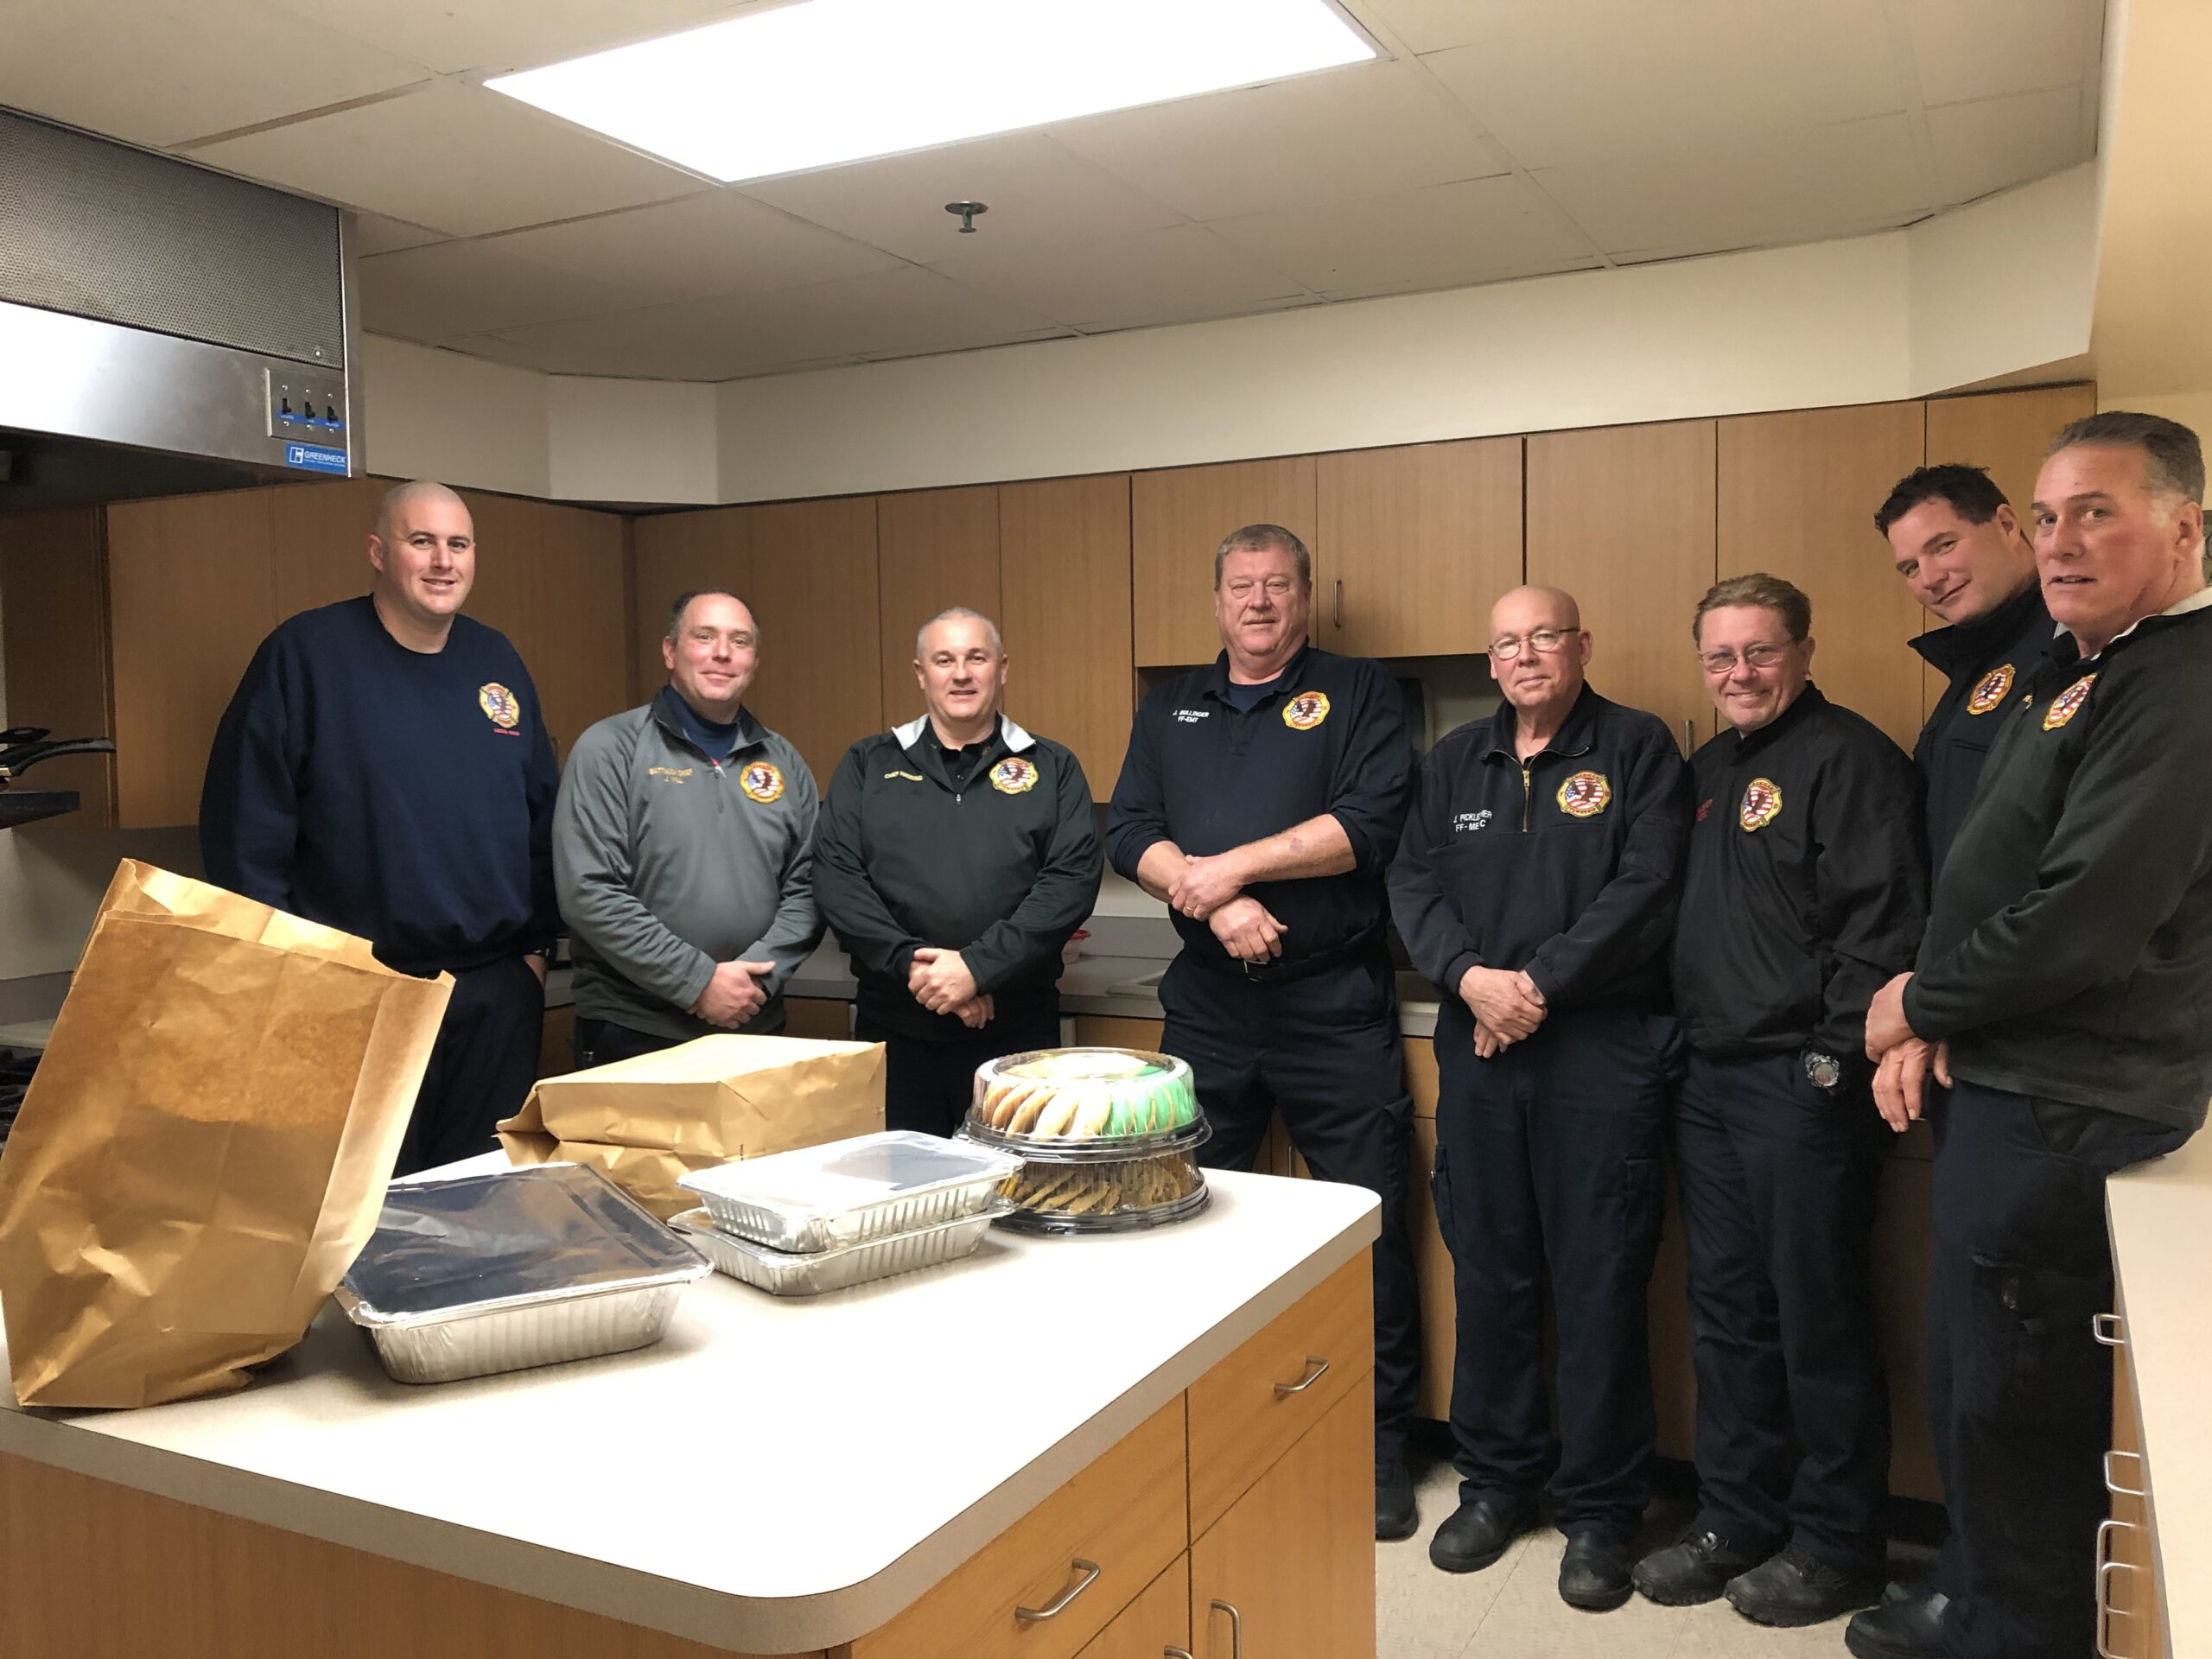 The American Township Firemen and EMT's enjoyed a delicious lunch for Random Acts Of Kindness Day! They are so appreciated for all they do for us!!